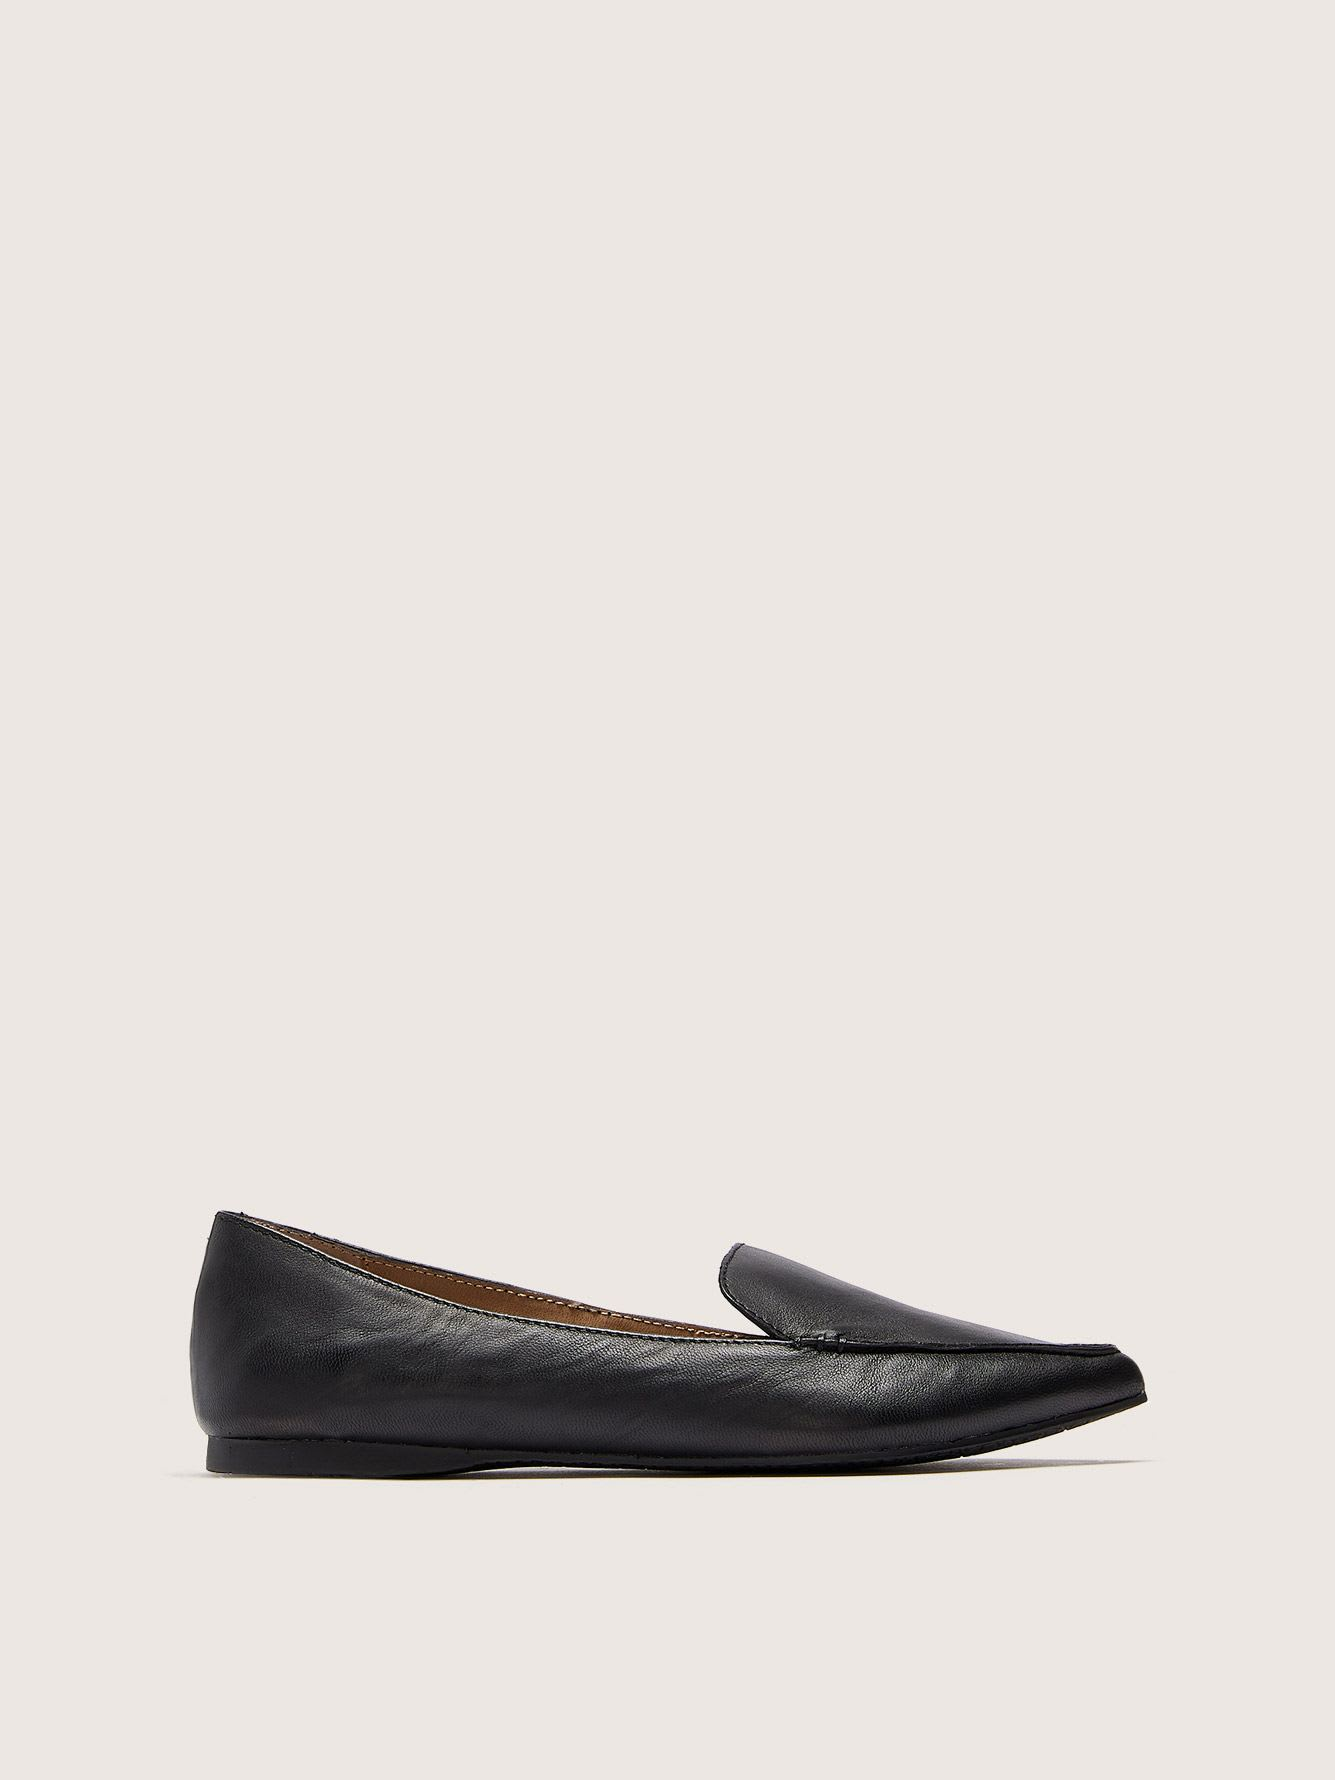 Wide Width Pointed Toe Feather Loafers - Steve Madden